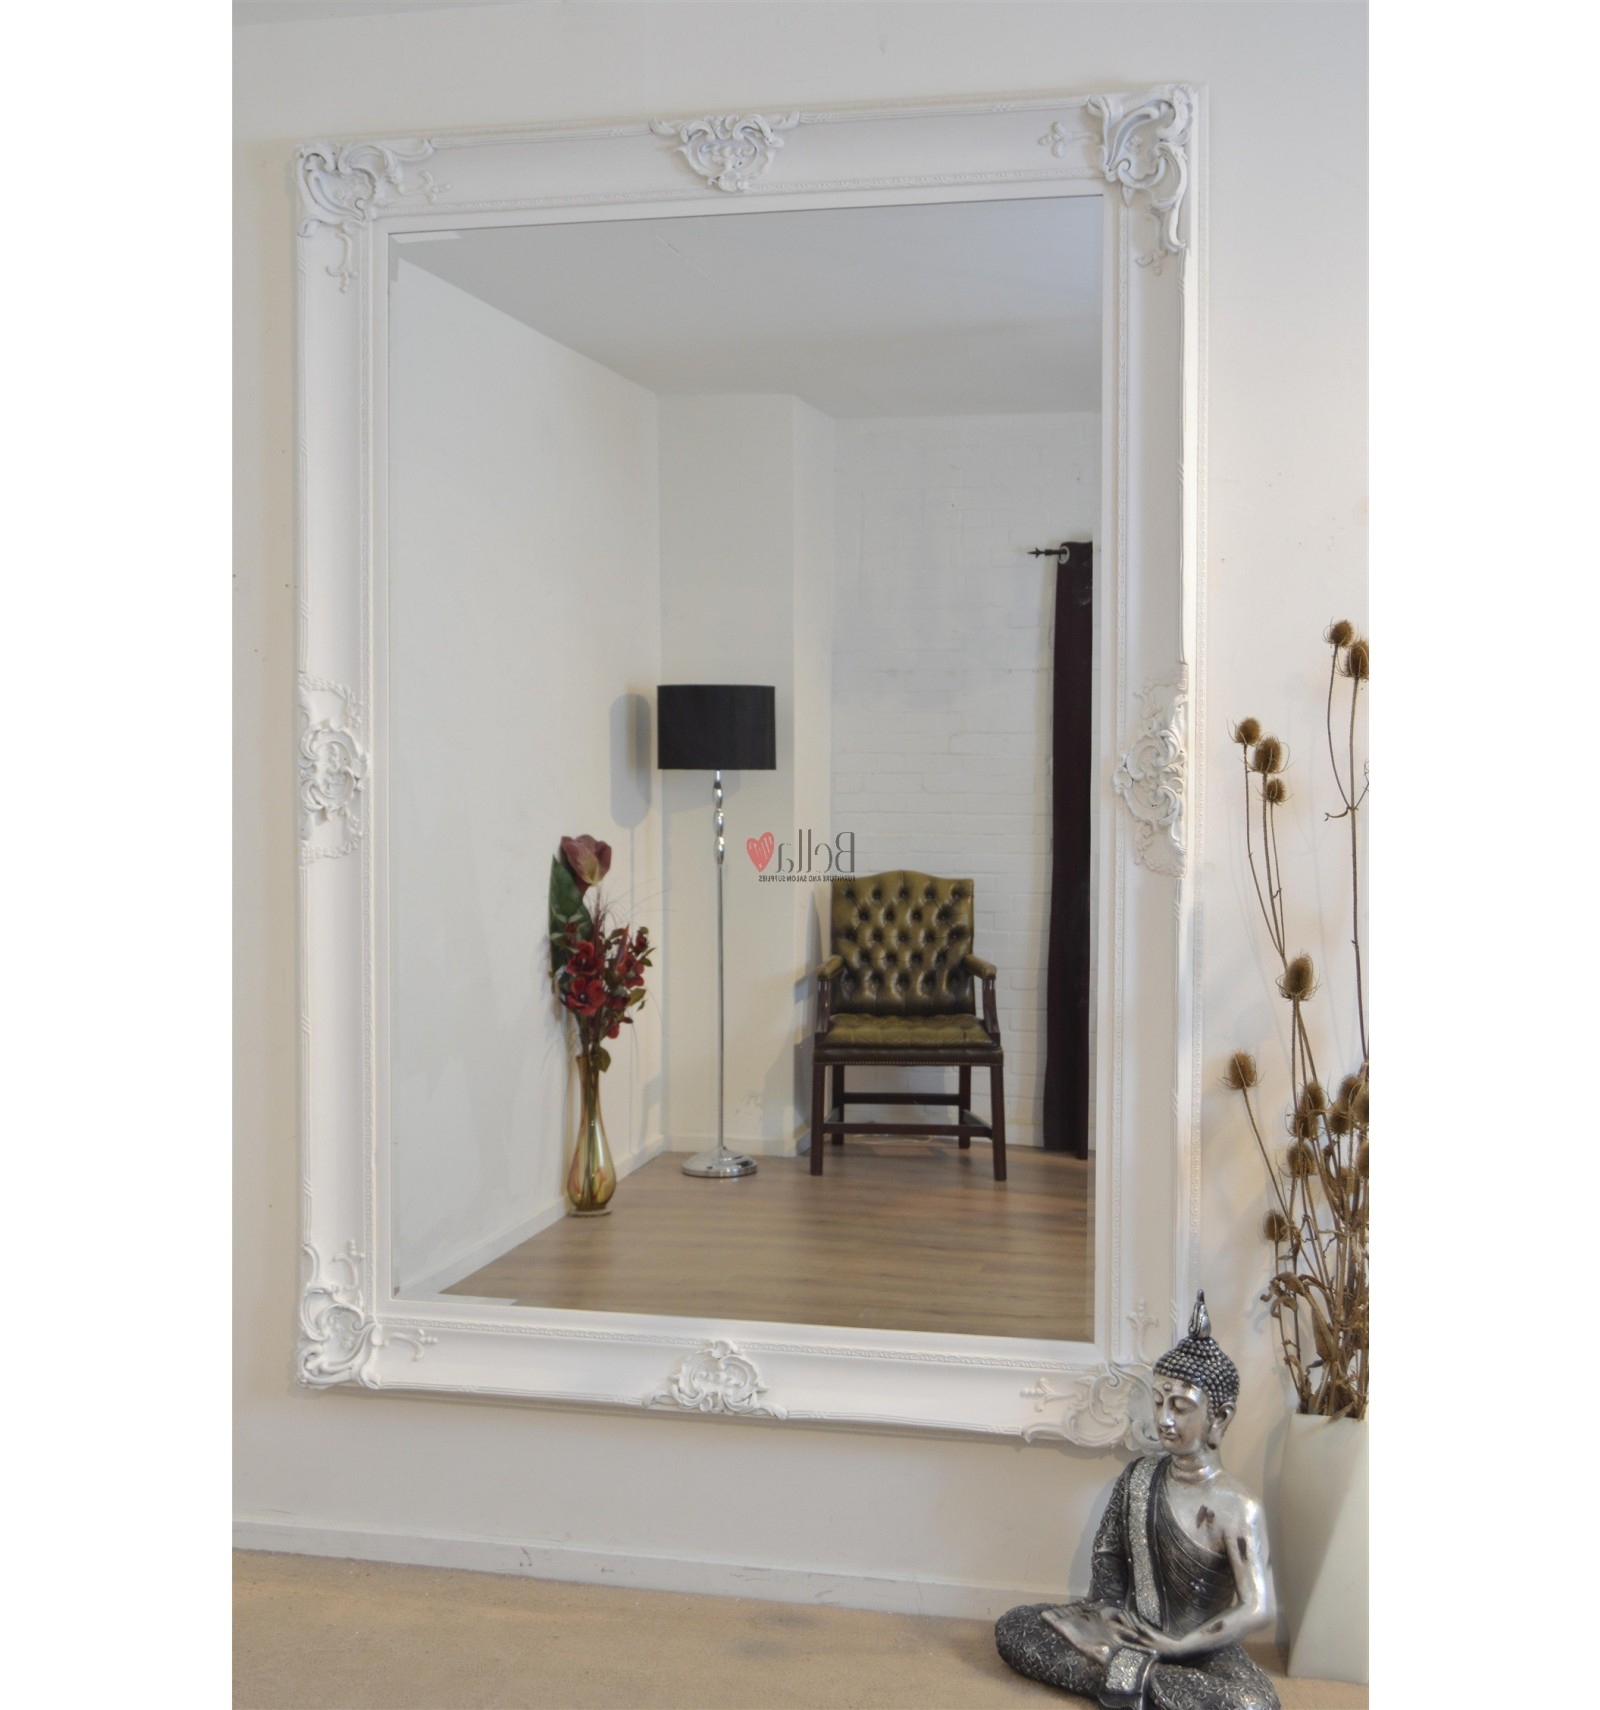 Salon Wall Mirrors Intended For Recent White Extra Large Wall Mirror (View 16 of 20)